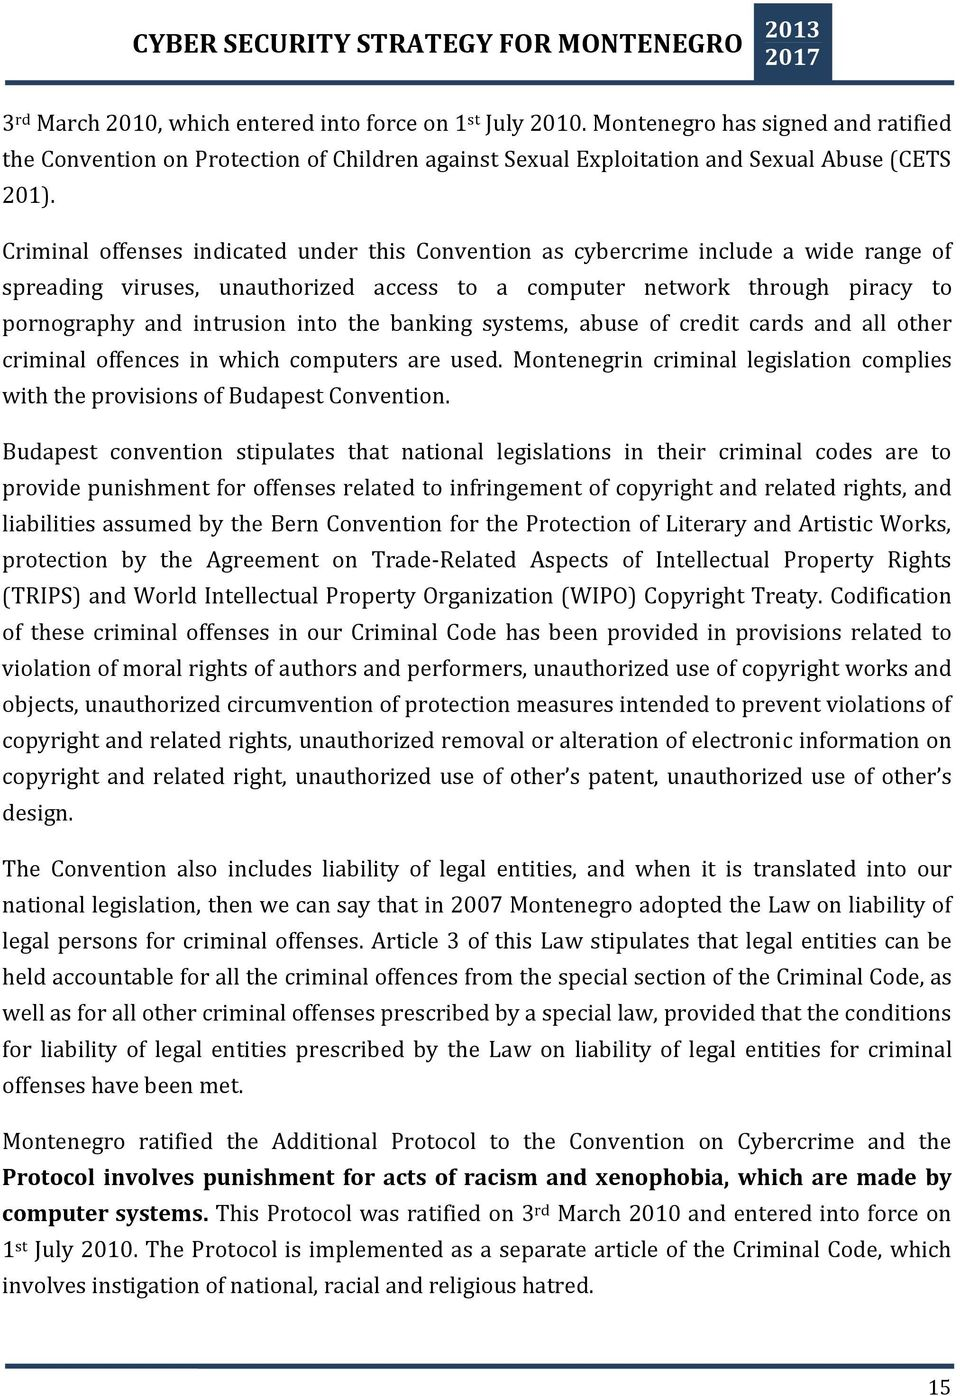 the banking systems, abuse of credit cards and all other criminal offences in which computers are used. Montenegrin criminal legislation complies with the provisions of Budapest Convention.